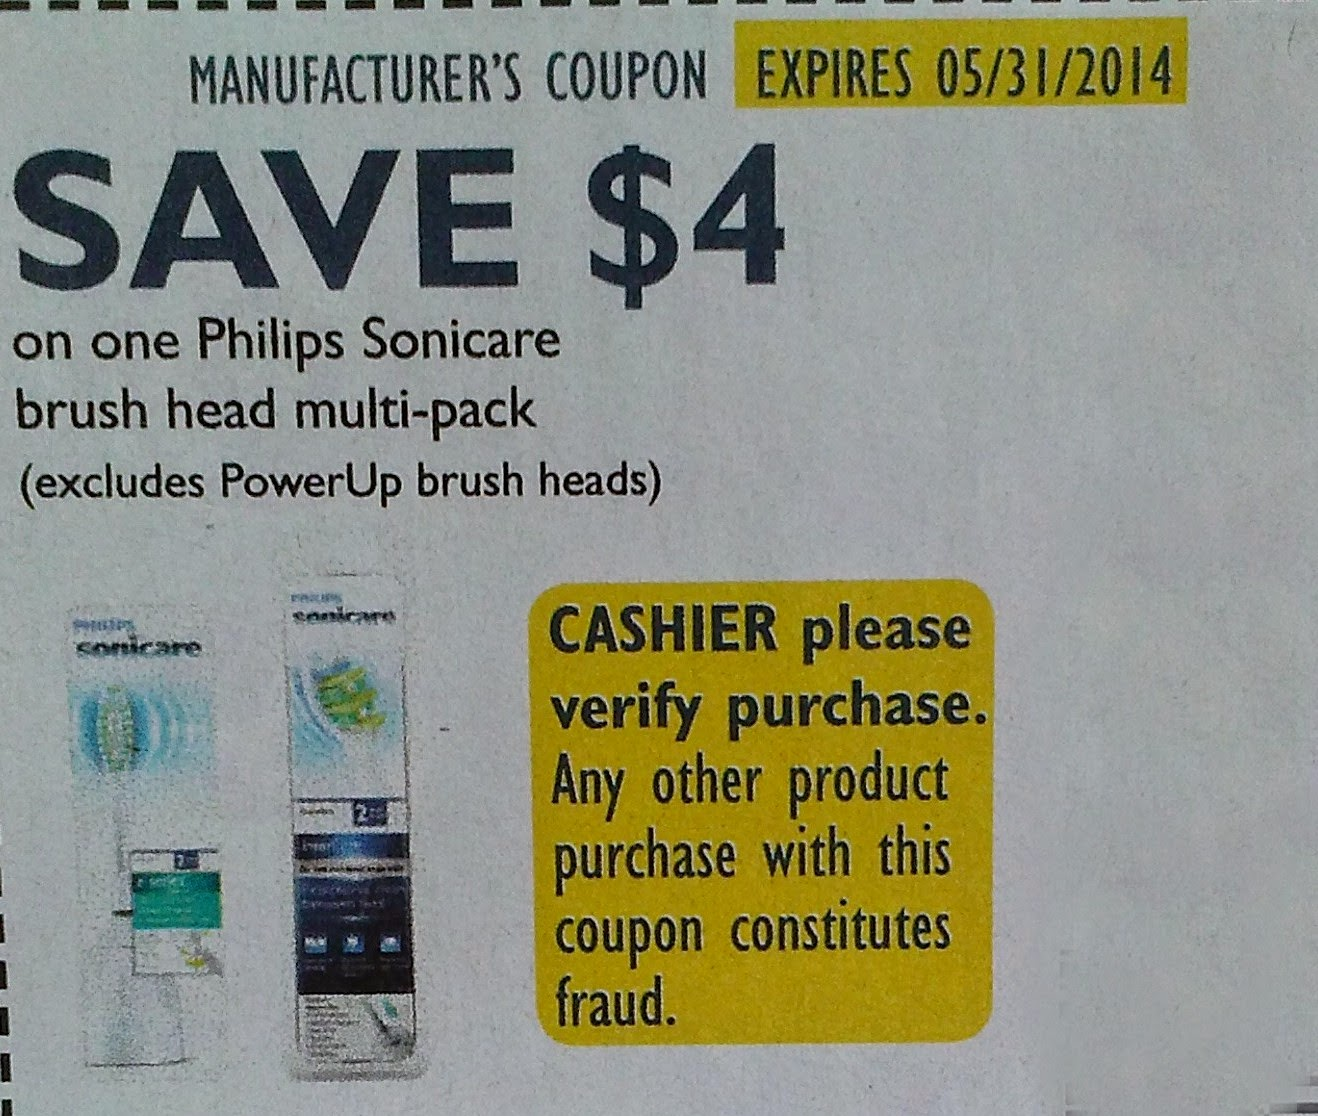 photograph regarding Philips Sonicare Coupons Printable titled Philips sonicare brush brain multi pack printable coupon